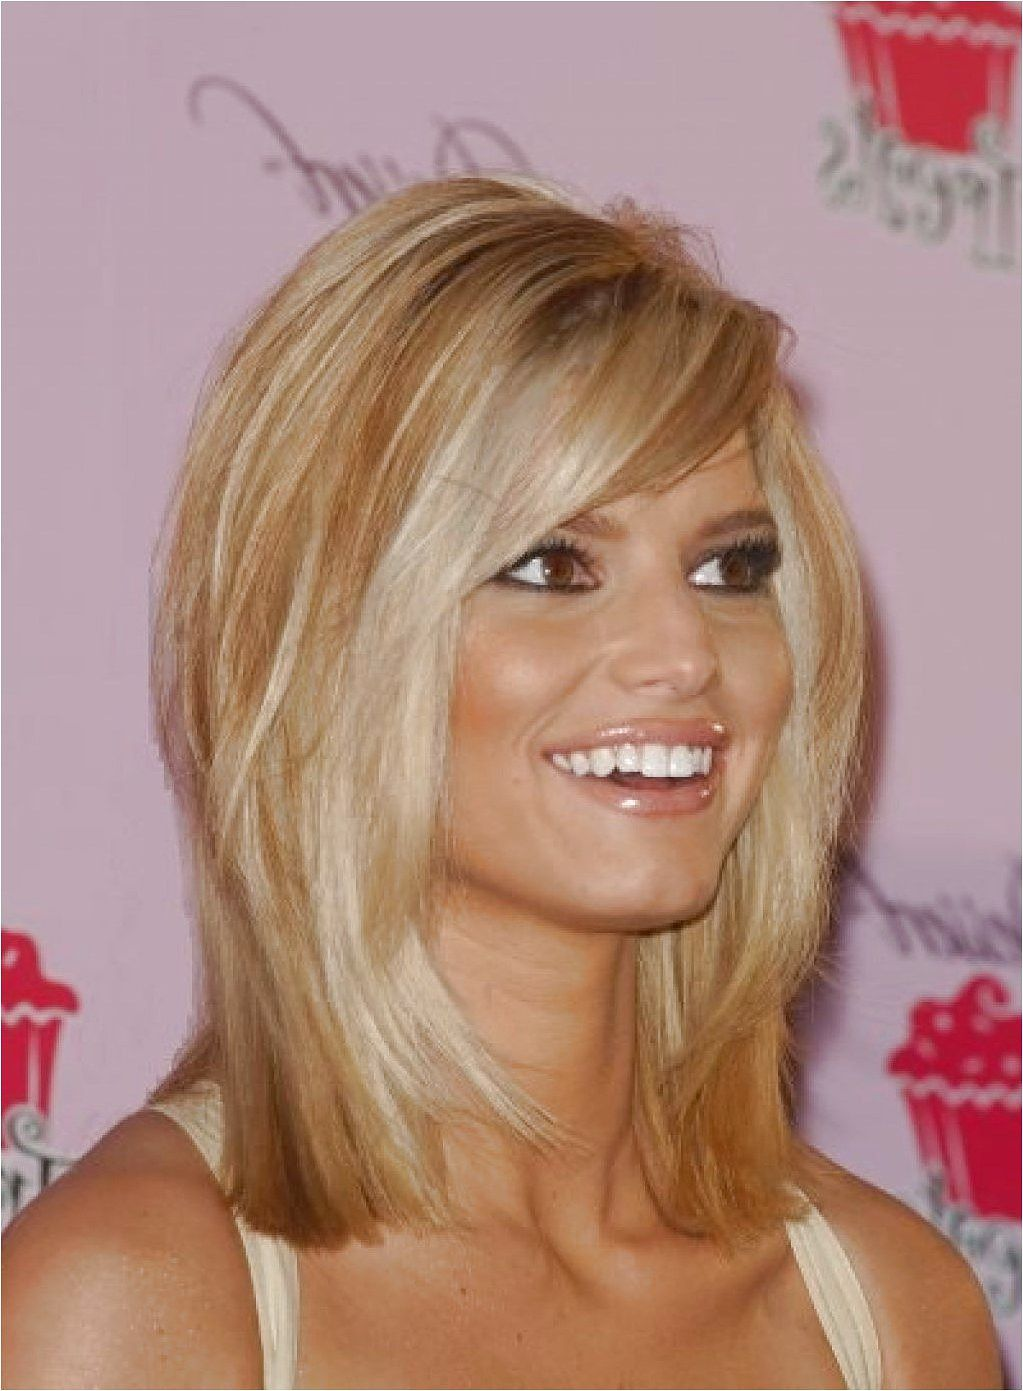 Medium Haircuts Jessica Simpson Long Side Swept Bangs Long Hairstyle Galleries - click on the image or link for more details. #jessicasimpsonhair